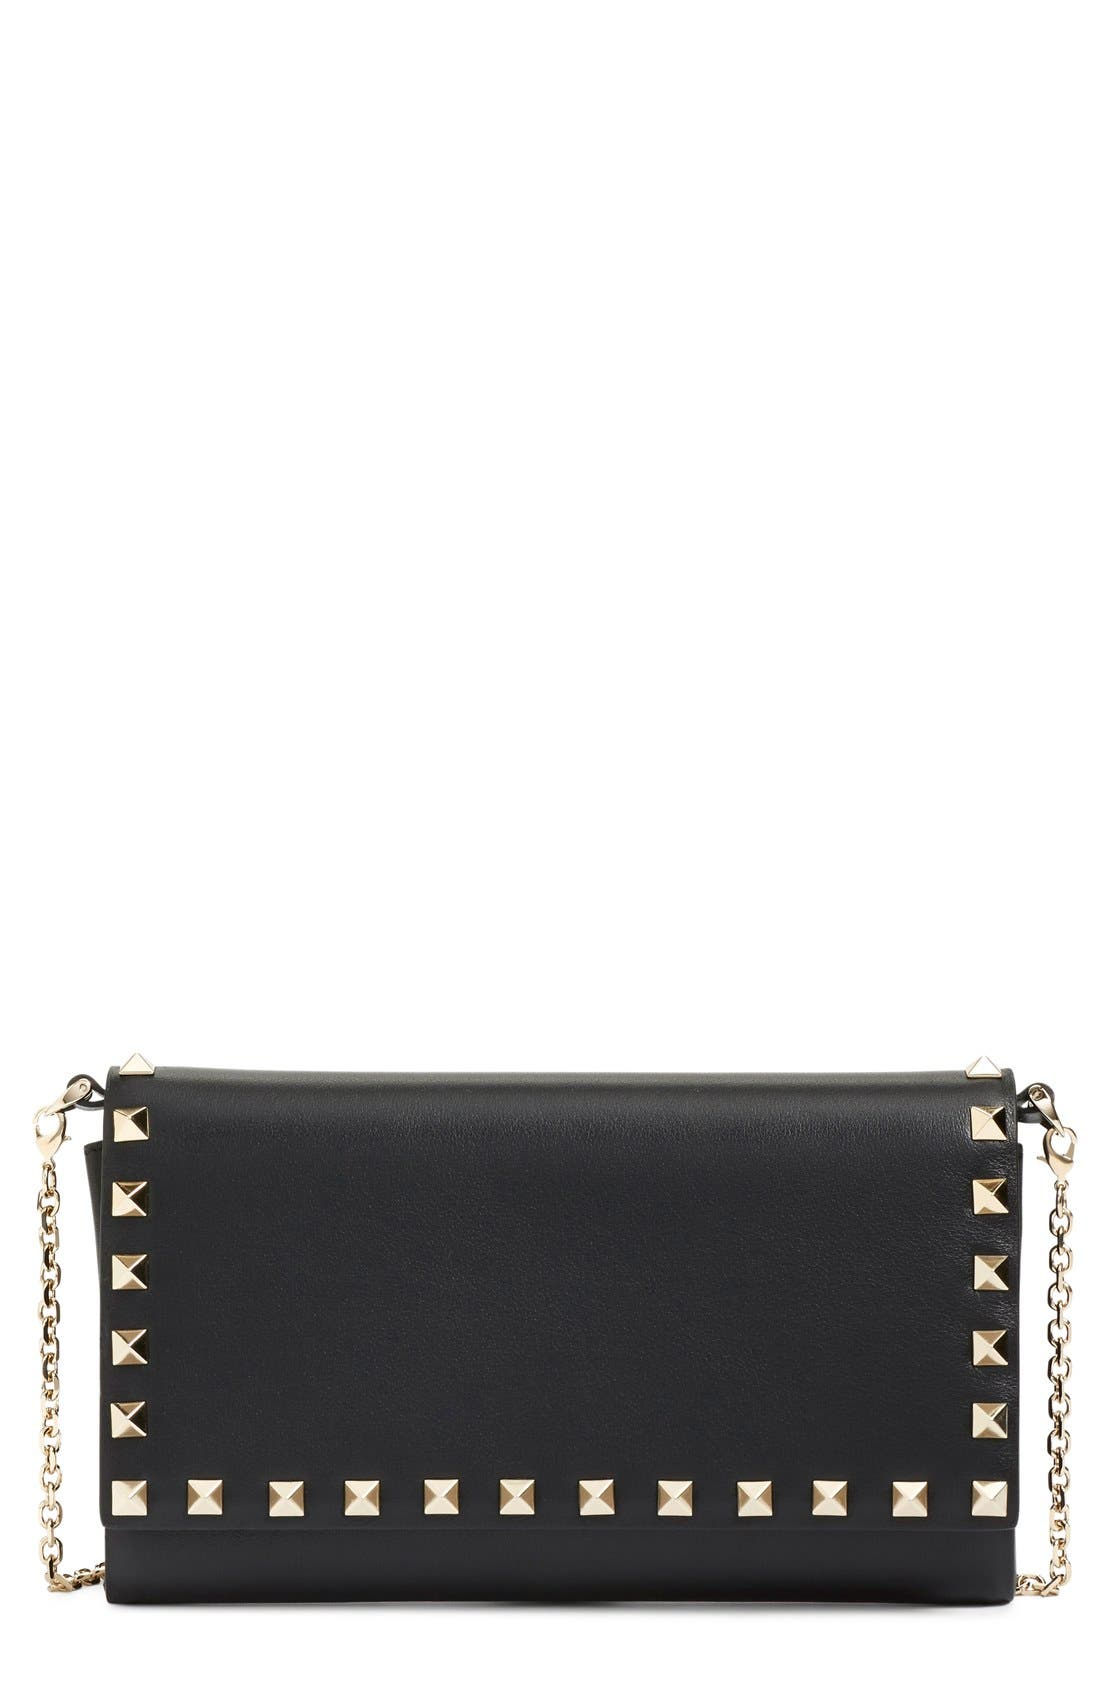 Alternate Image 1 Selected - Valentino 'Rockstud' Calfskin Leather Wallet on a Chain